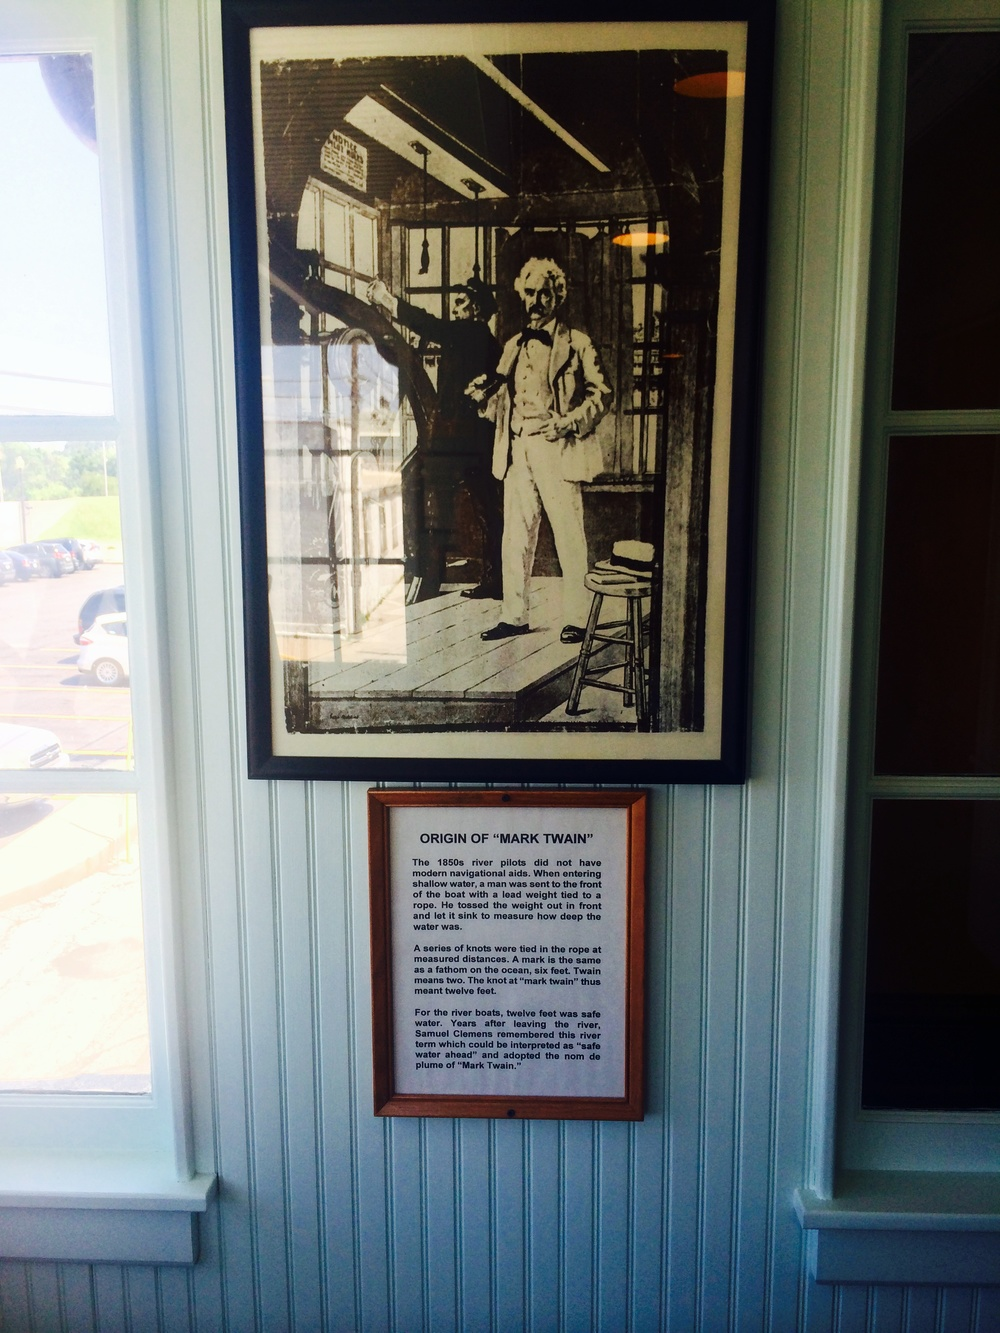 We had a very short ride day (36 miles) and got to go to the Mark Twain Museum in Hannibal, Missouri. I felt so uneducated - I didn't realize Mark Twain was a pen name and his real name was Samuel Clemens!